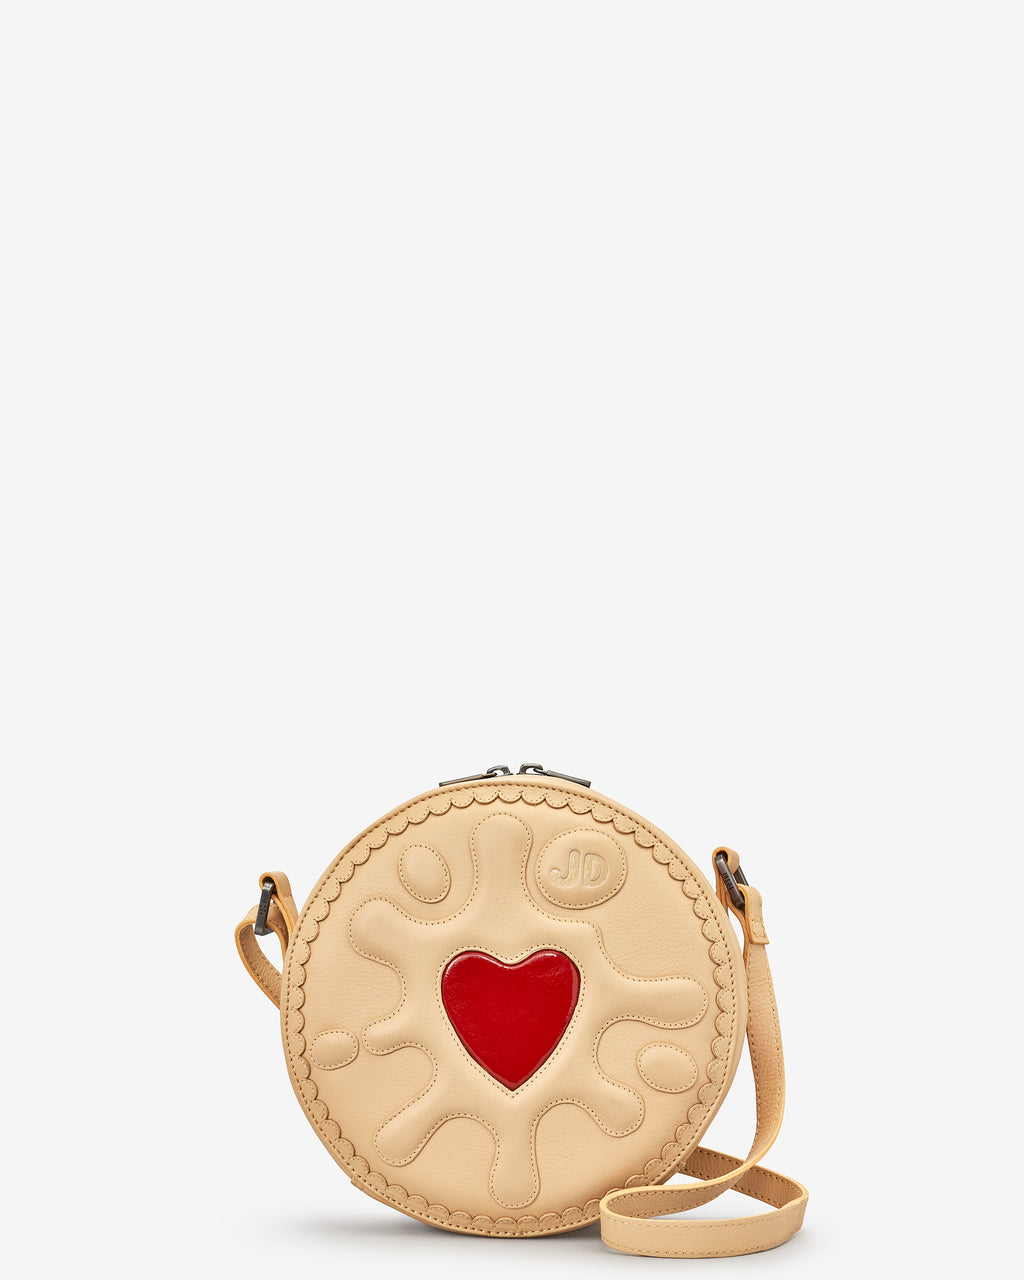 Jammie Dodger Biscuit Leather Across Body Bag